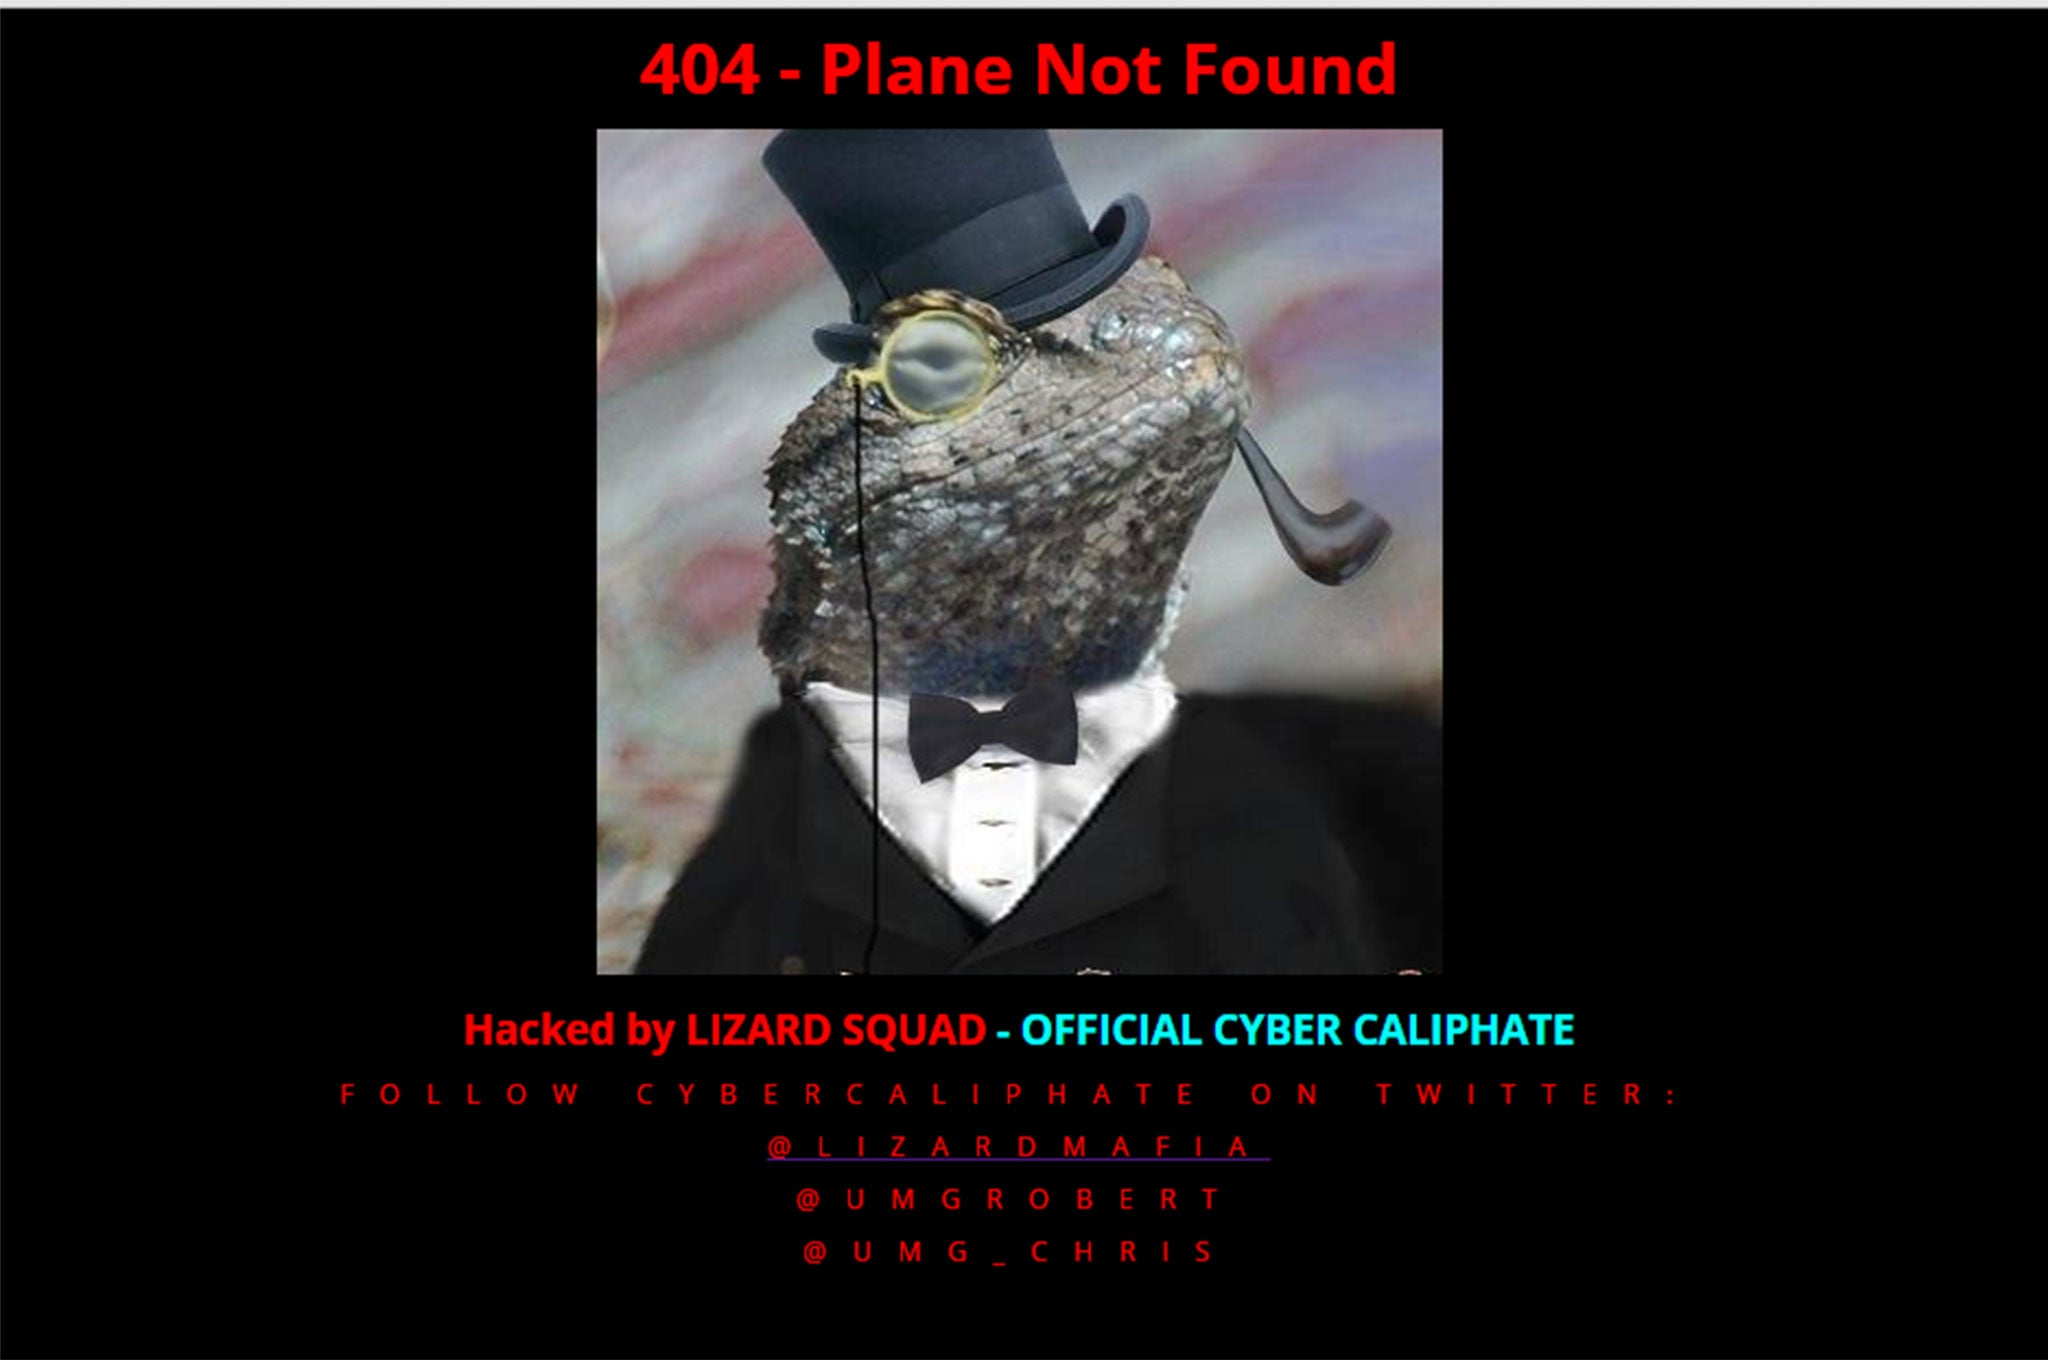 Design Squad Website >> Who are Lizard Squad? | News | Lifestyle | The Independent